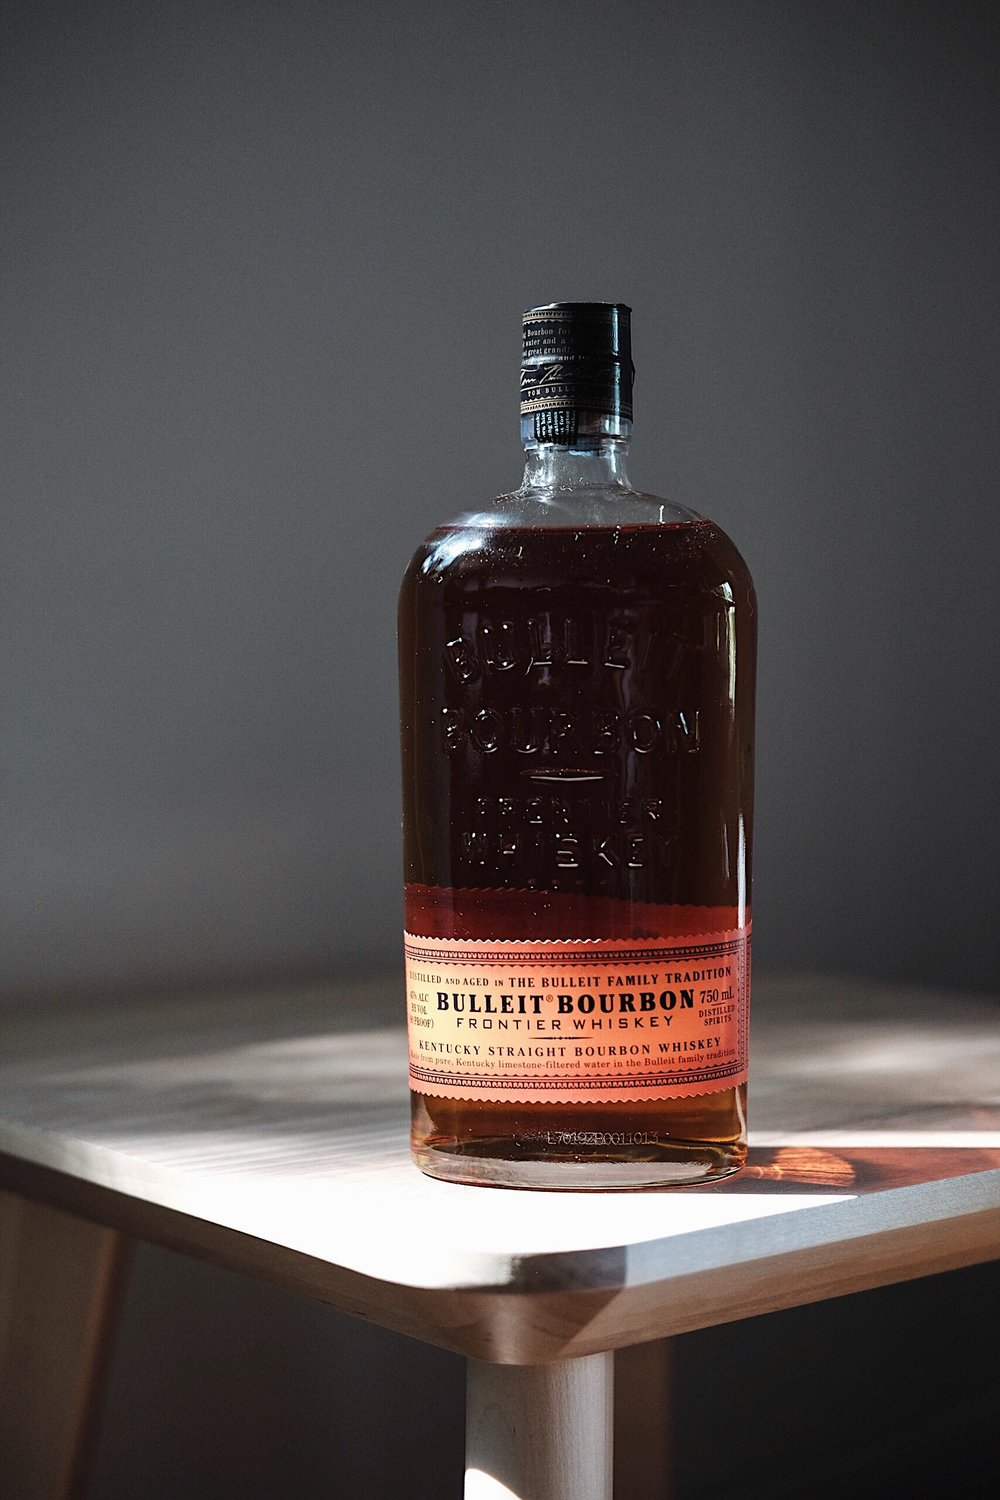 Bulleit Bourbon - AGE: 6+ yearsCOST: $25-$32ABV: 45DEFINING FLAVORS: Spicy & Sweet